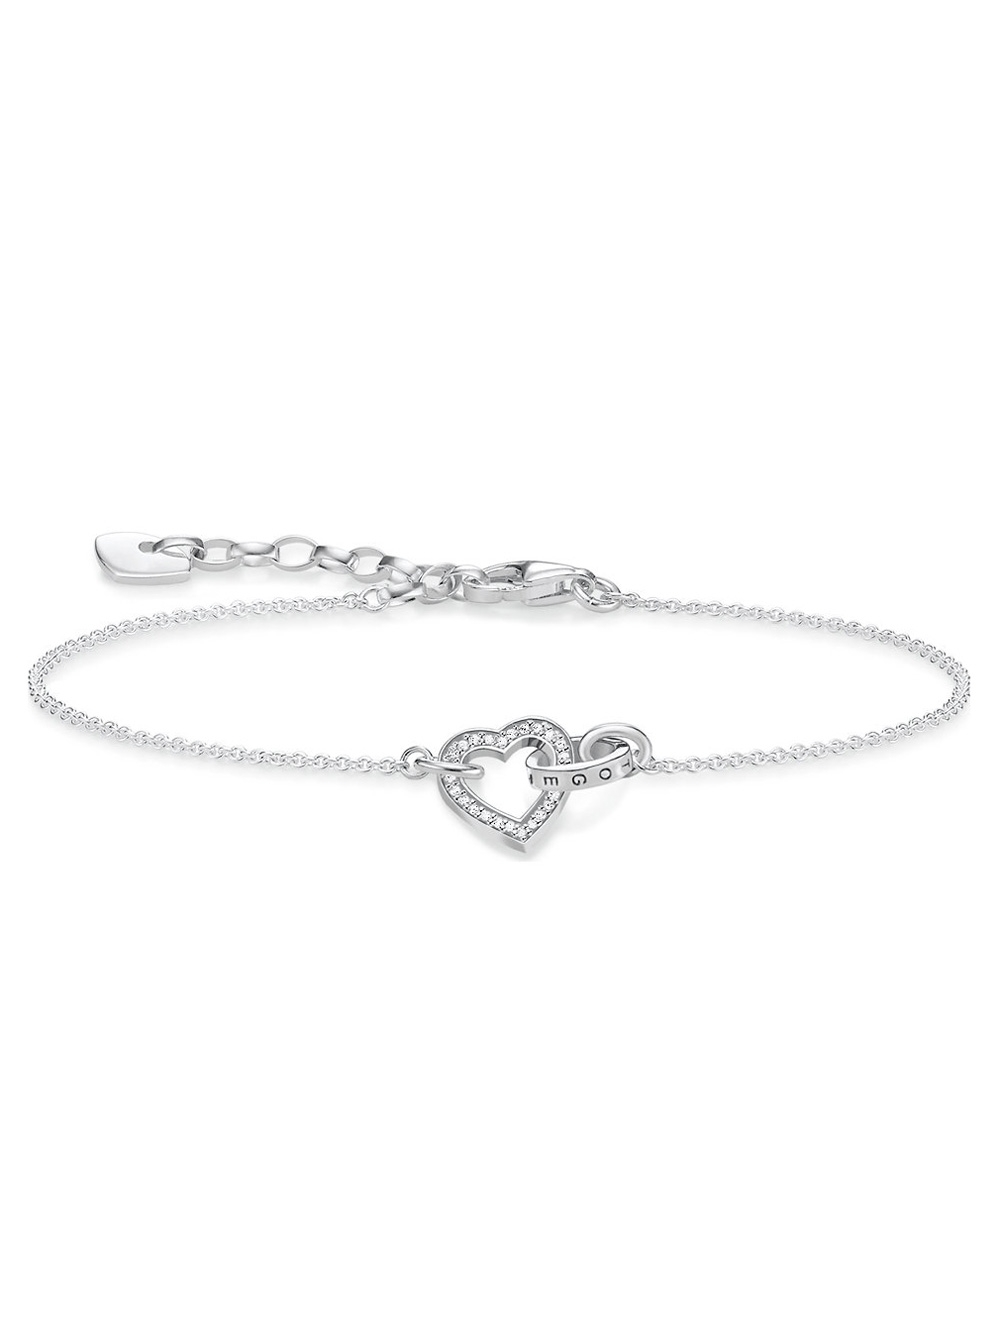 Thomas Sabo Armband Together Herz Klein A1648-051-14 14-19cm